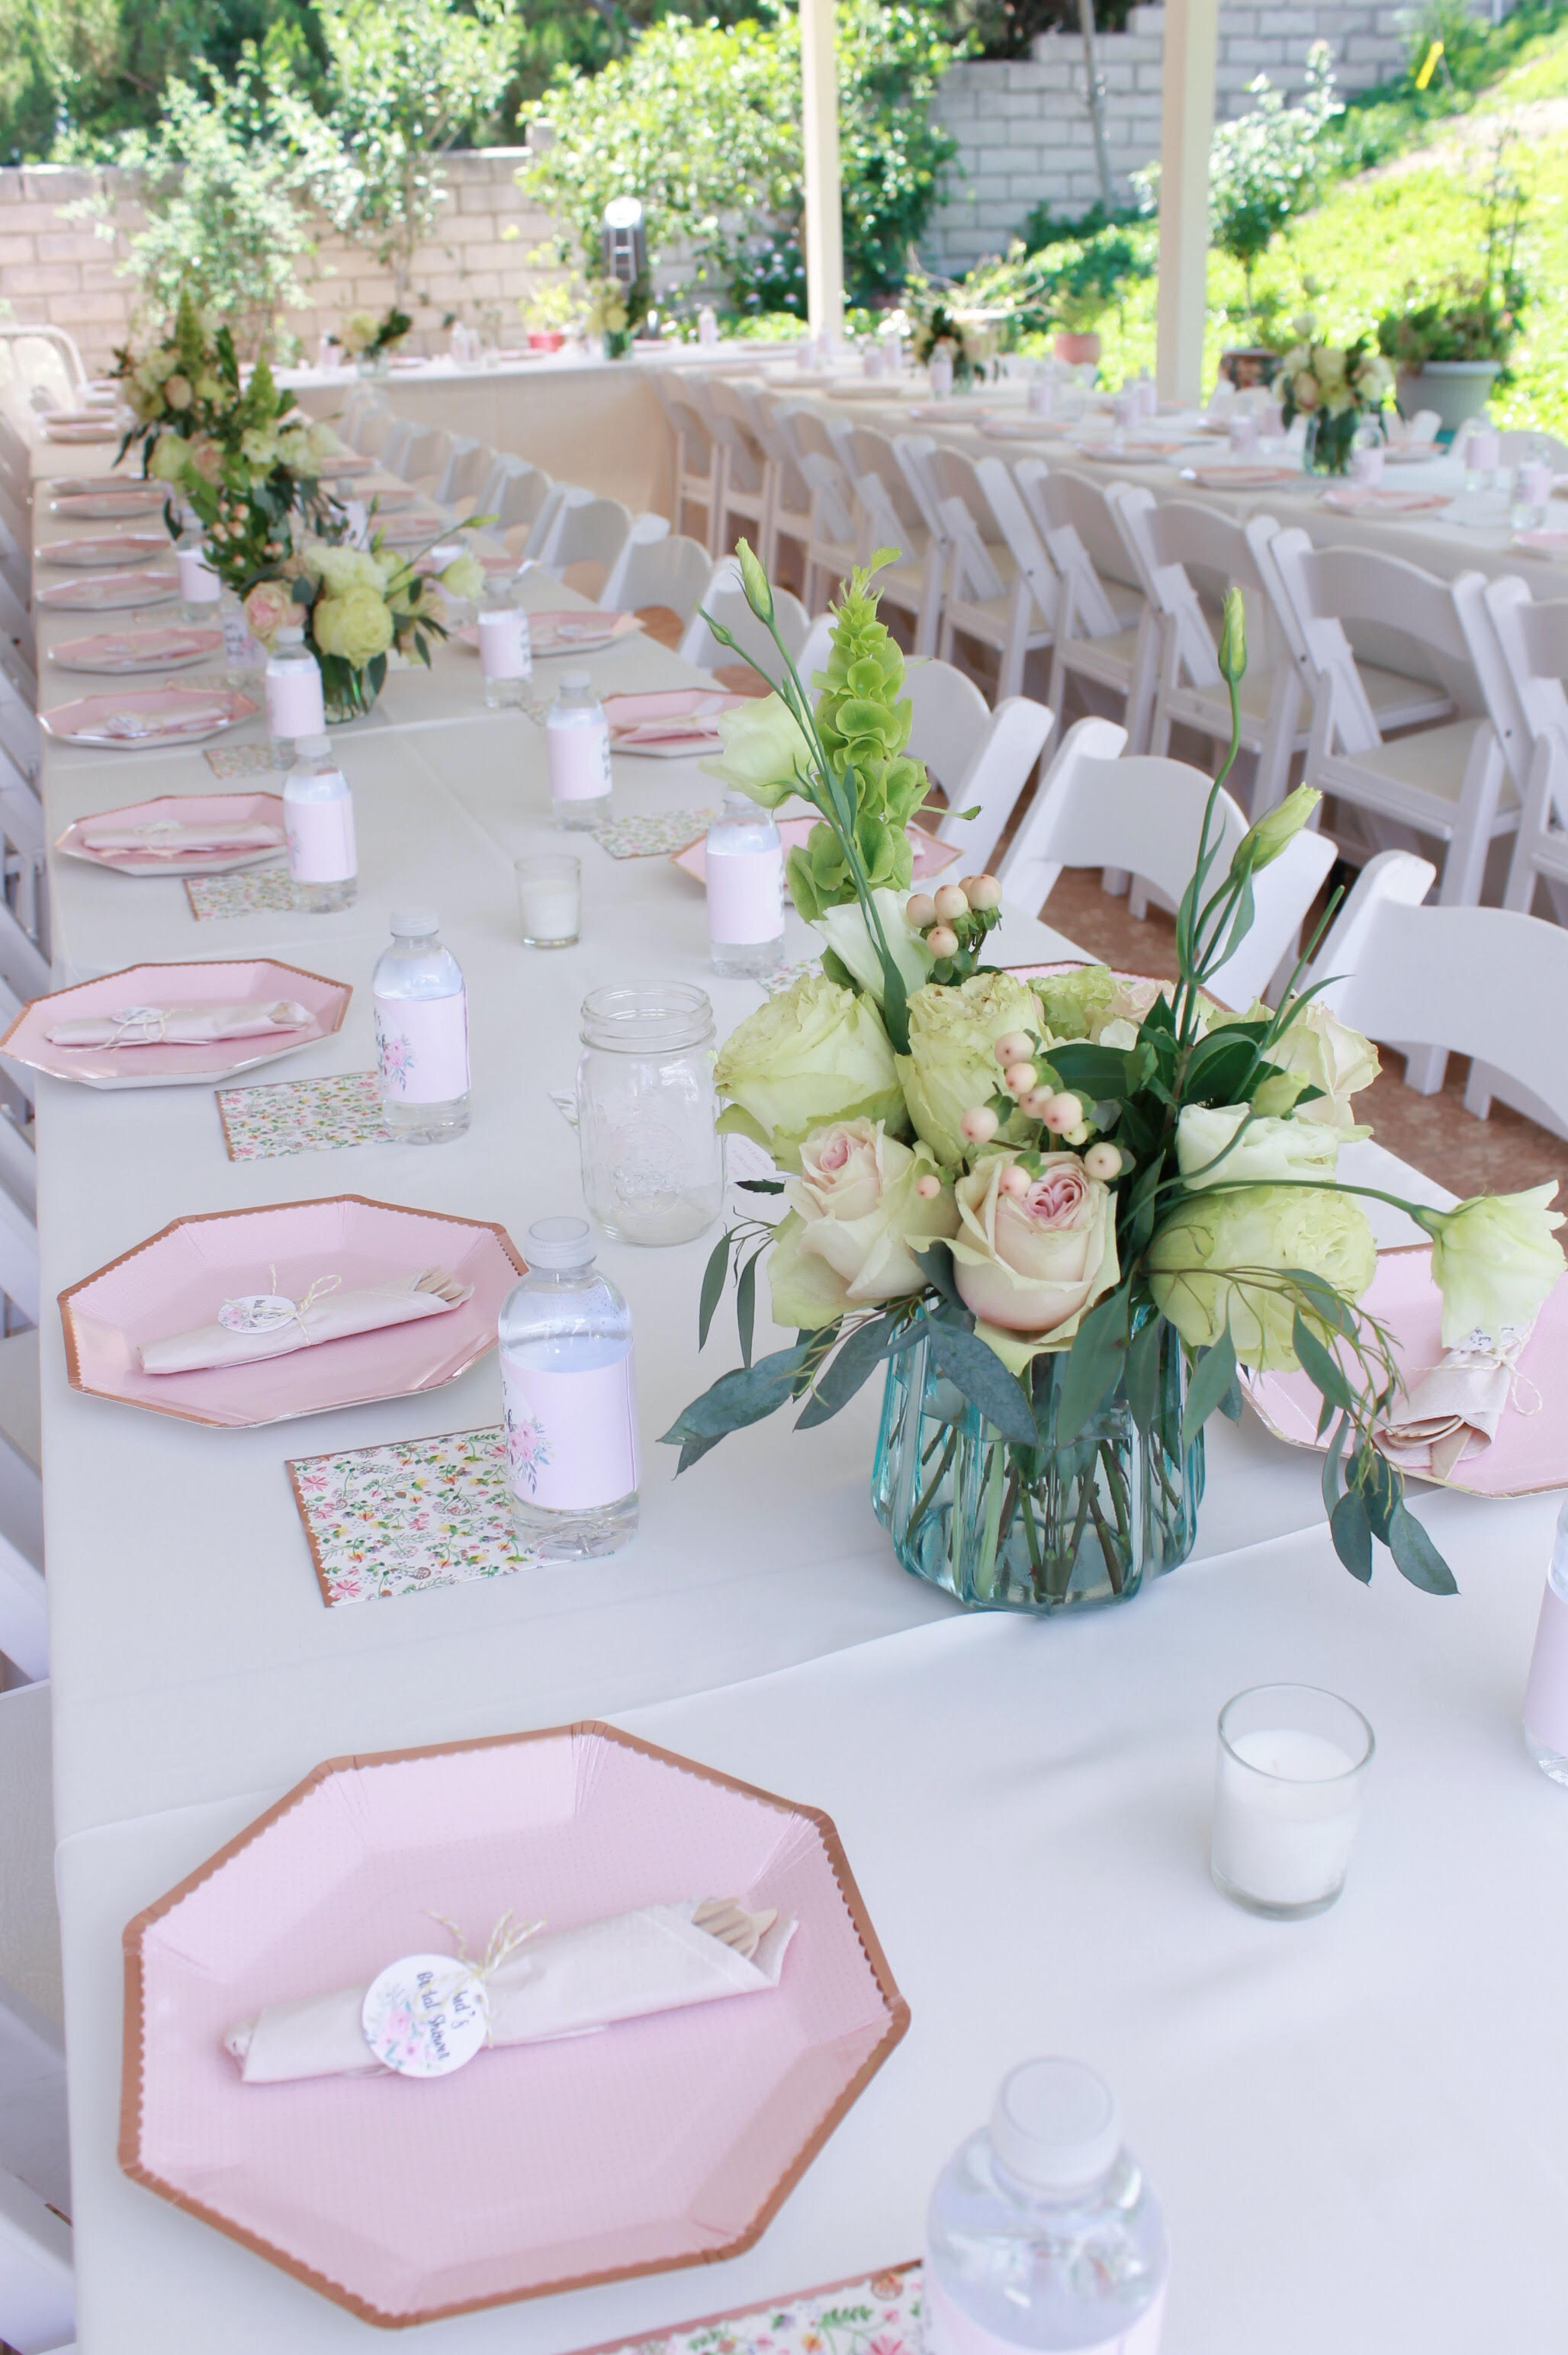 bridal shower tablescape ideas-tablescape-table setting-garden bridal shower-www.SugarPartiesla.com.jpg